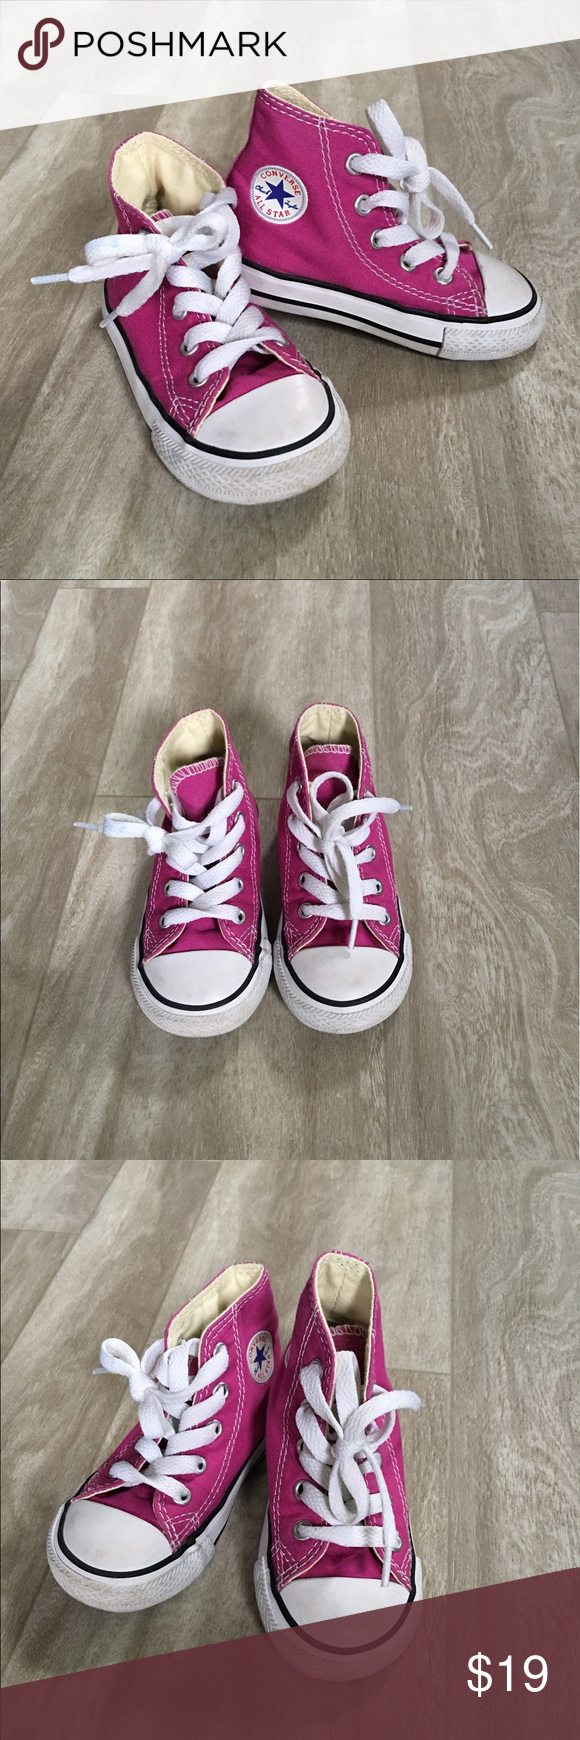 bcb5534bc95 Toddler girls Converse high tops pink size 6 Toddler girls pink Converse  All Star high top lace ups. Size 6. These have been worn 3 or 4 times but  are ...